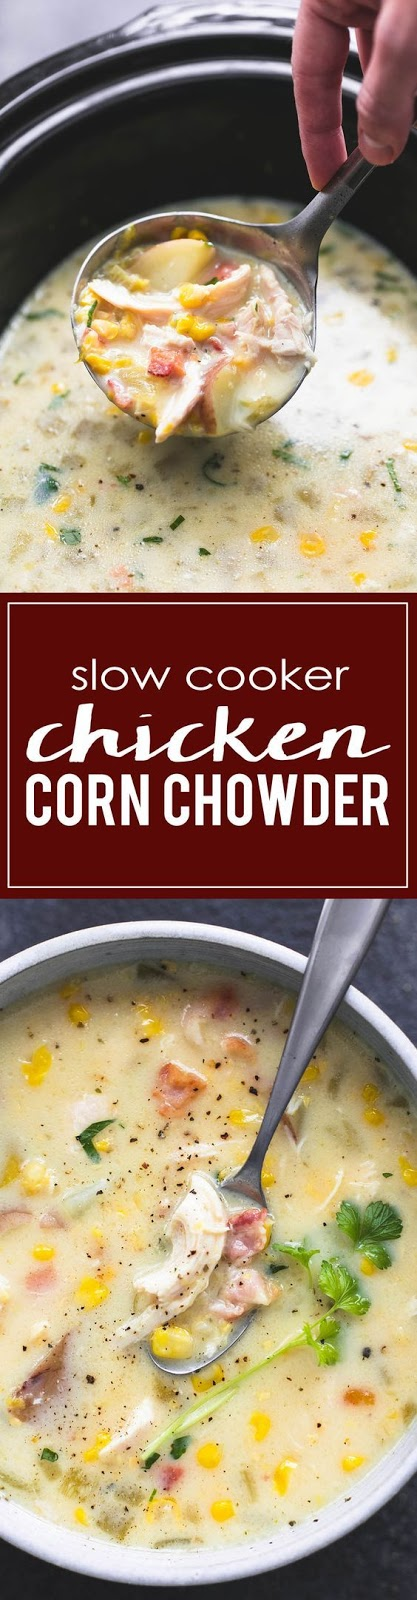 Slow Cooker Chicken Corn Chowder Recipes